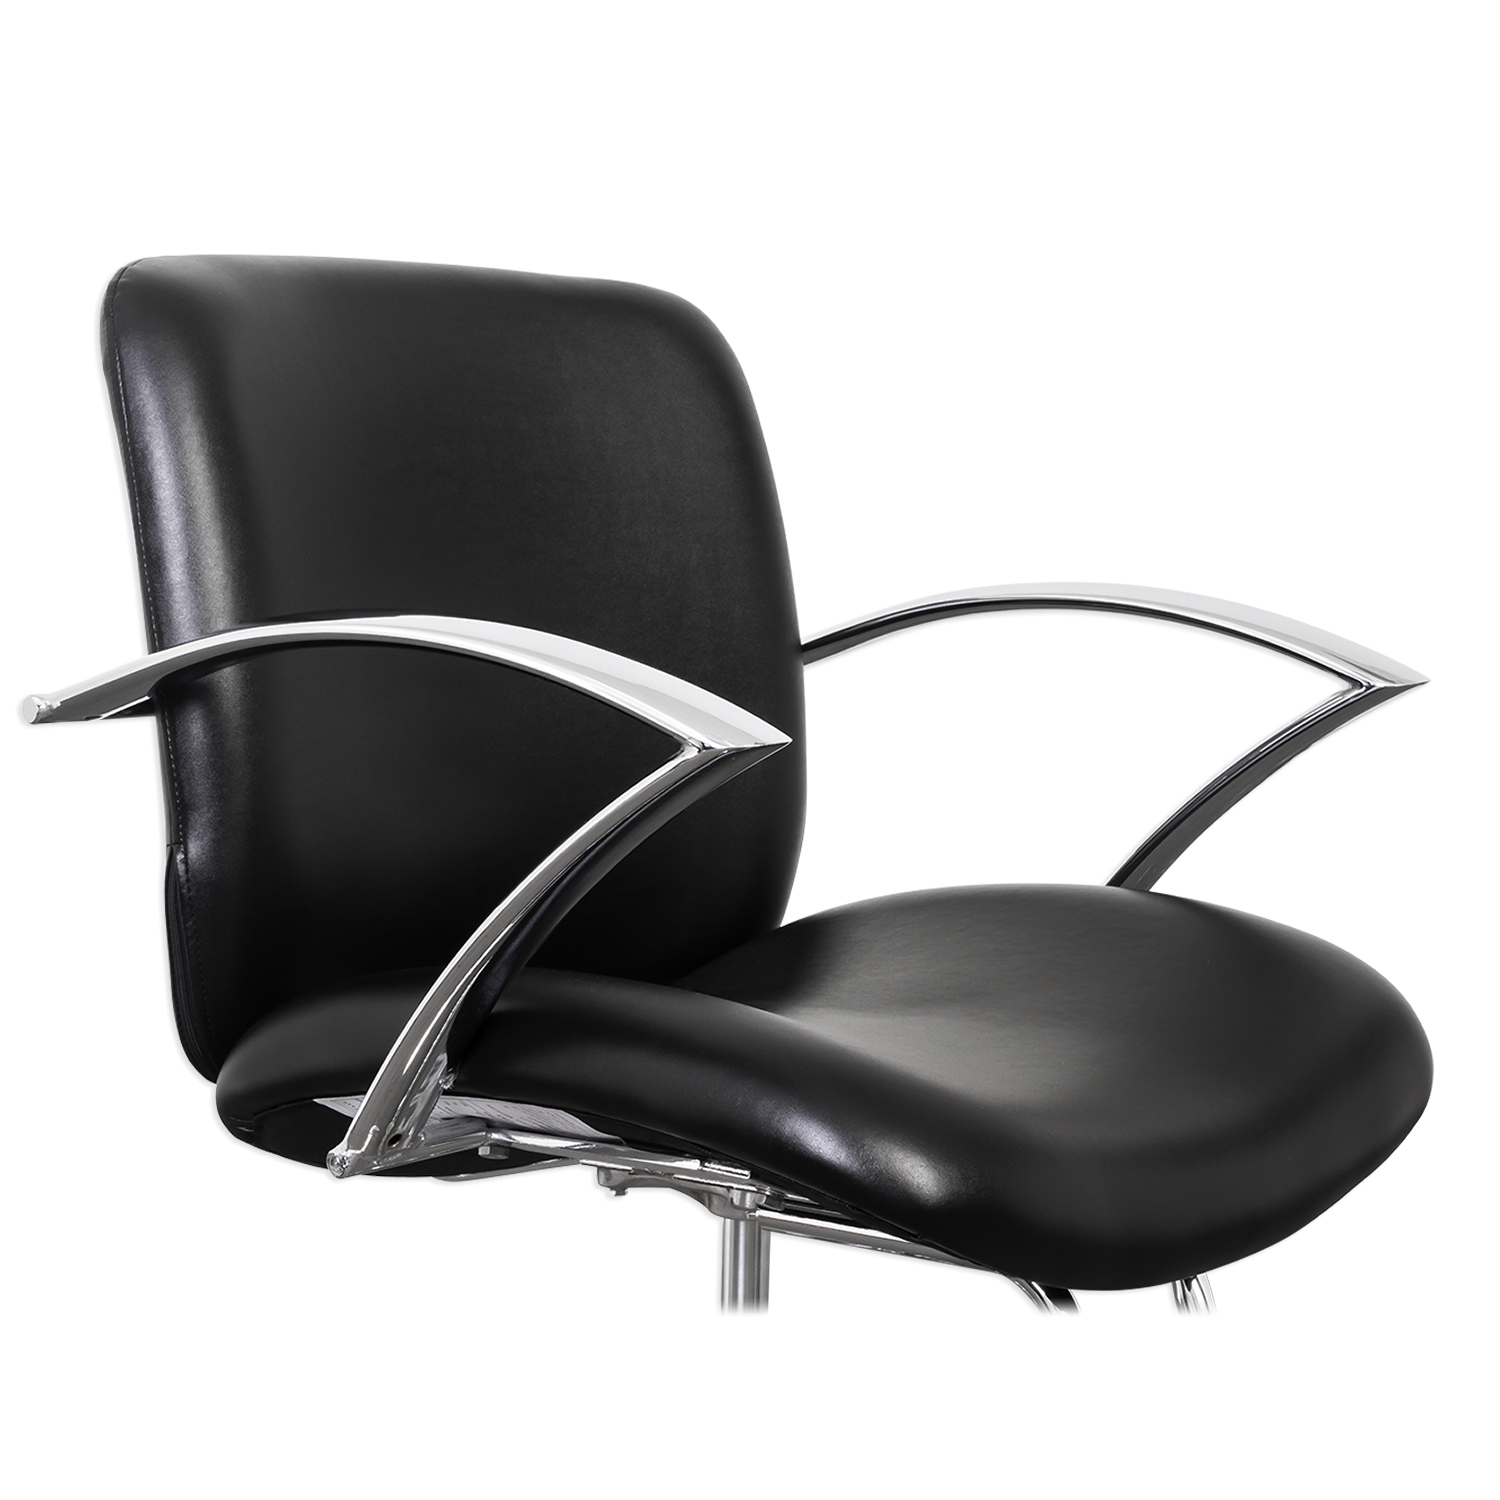 Weston II Styling Chair alternative product image 2